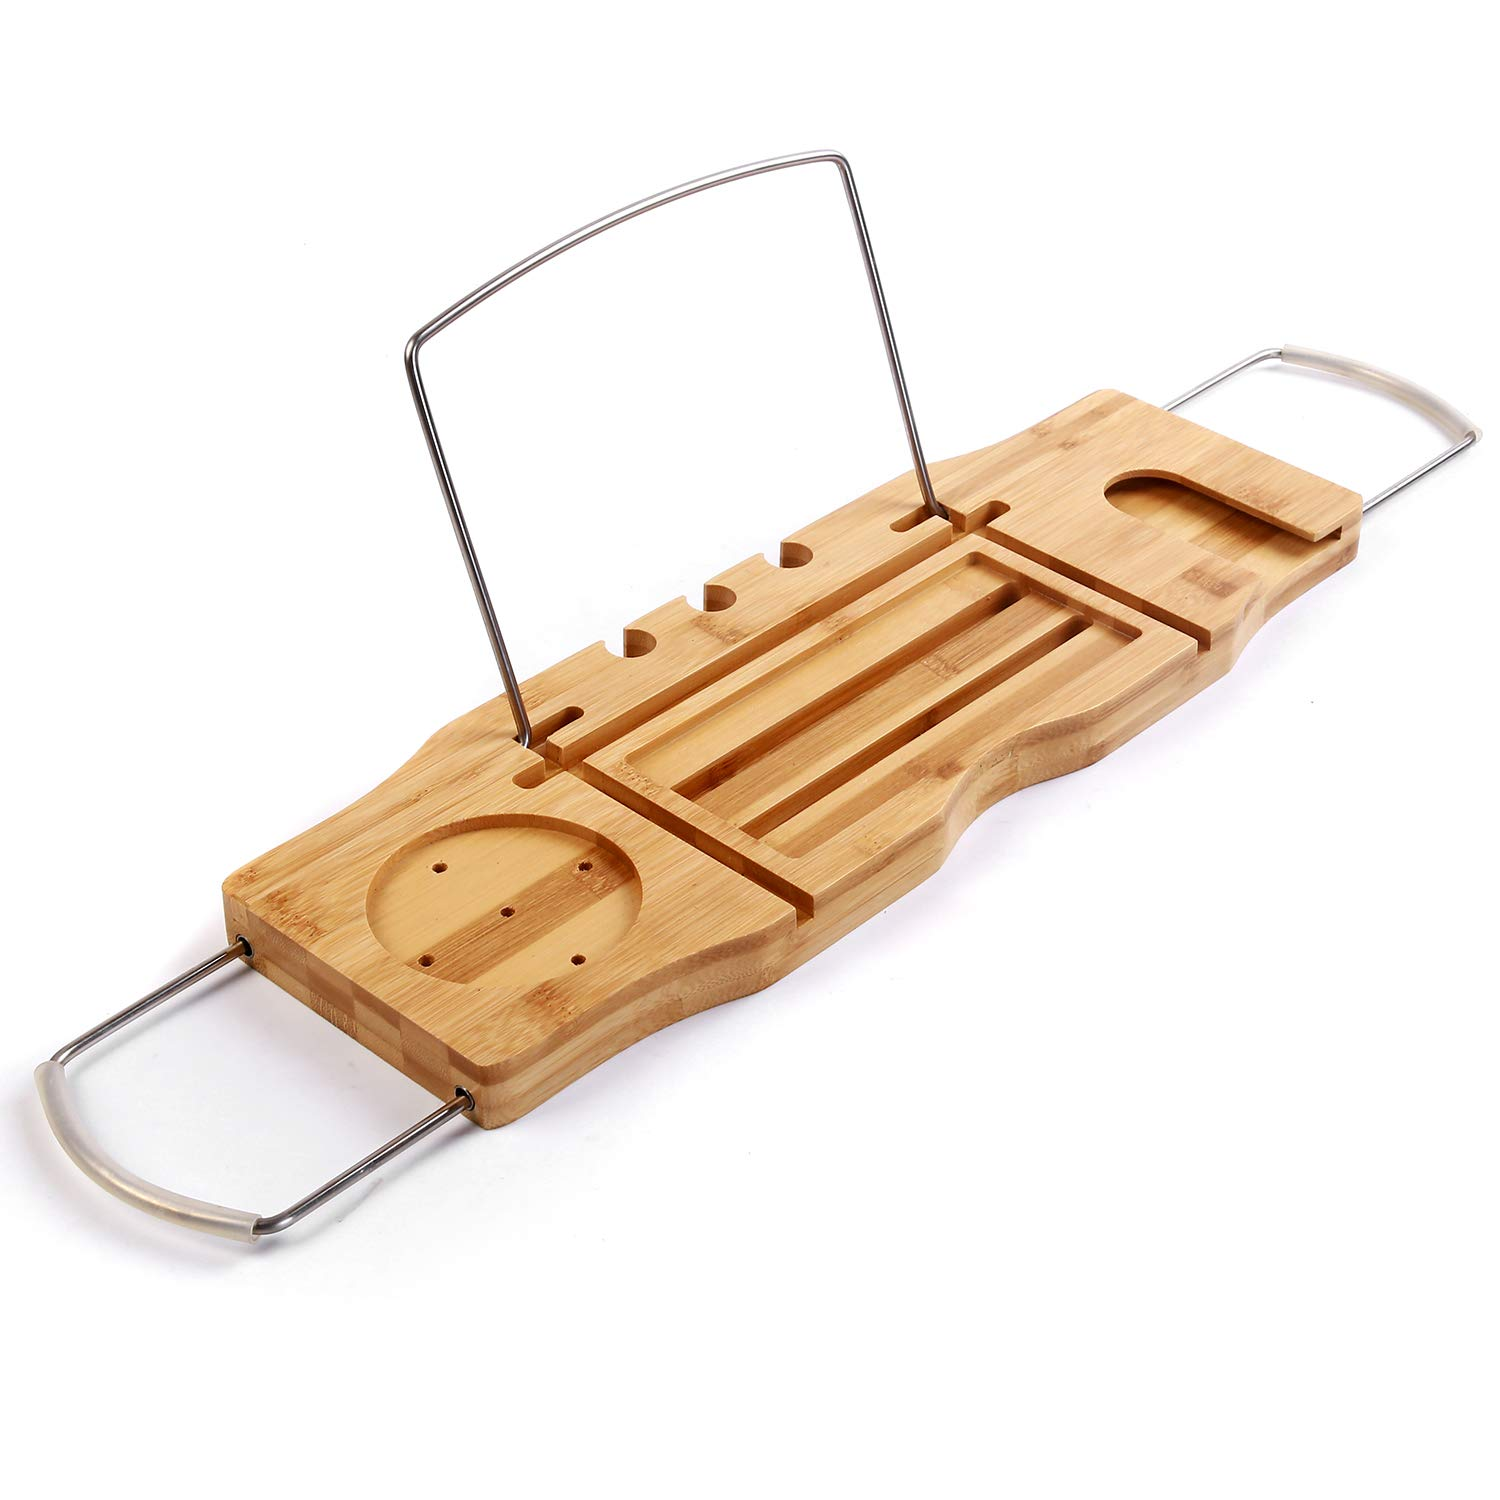 Utoplike Extendable Bamboo Bathtub Caddy Tray Bathtub Rack with Stainless Steel Arms Adjustable Book Holder and Slots for Wine Ipad Phone SafeHouseware